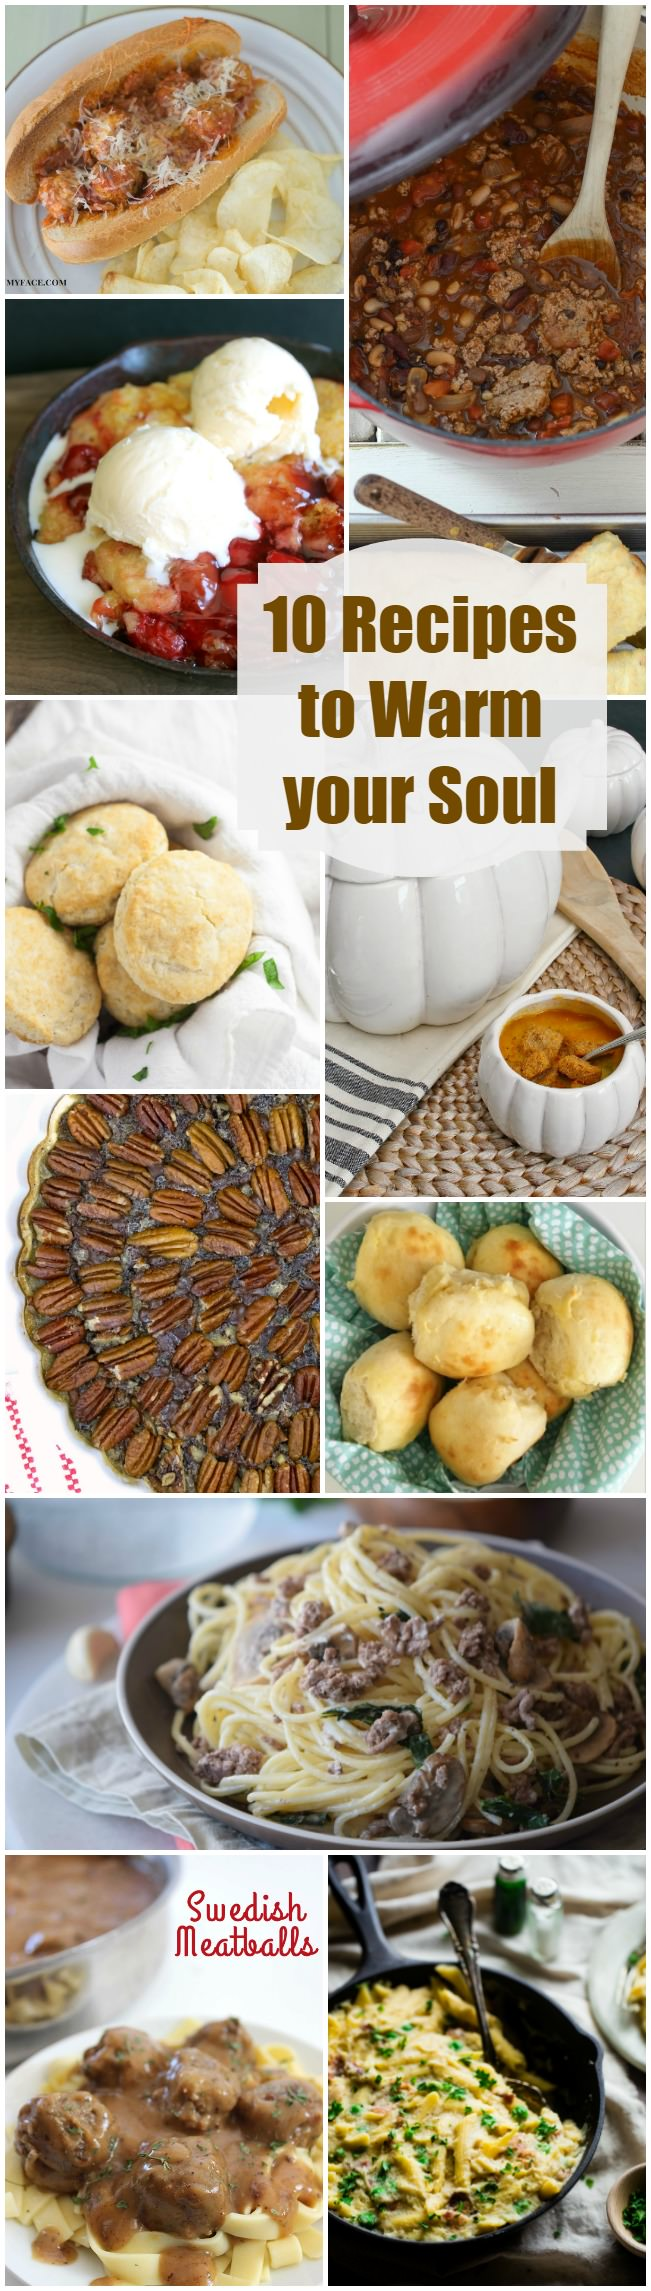 Ten Great Fall Recipes to Warm your Soul. Chili, Biscuits, Pie, and More!!